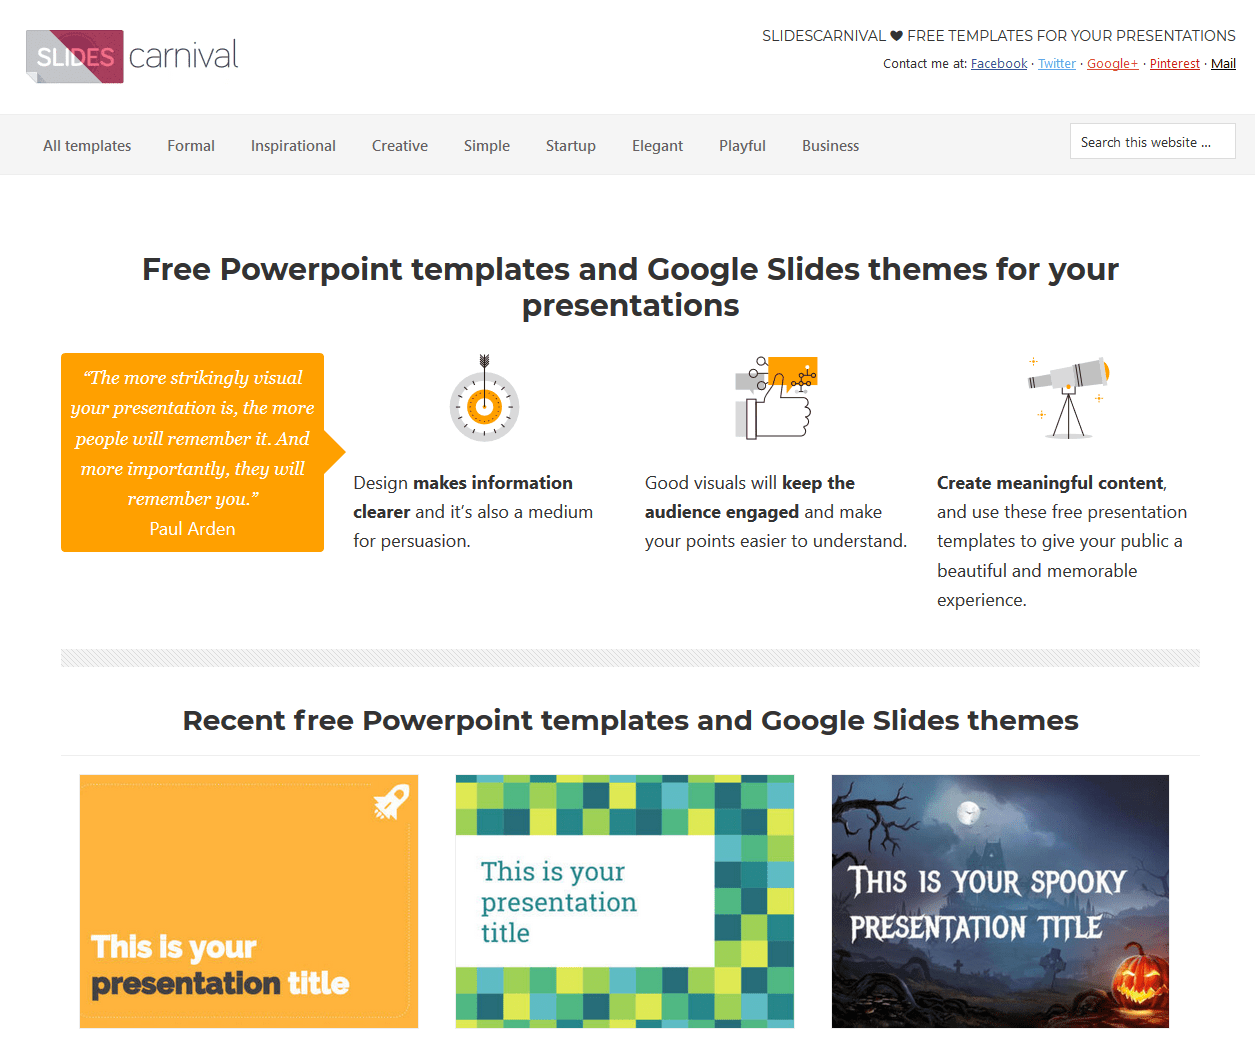 Slidescarnival free powerpoint templates and google slides themes slidescarnival free powerpoint templates and google slides themes for presenta eduk8me toneelgroepblik Gallery